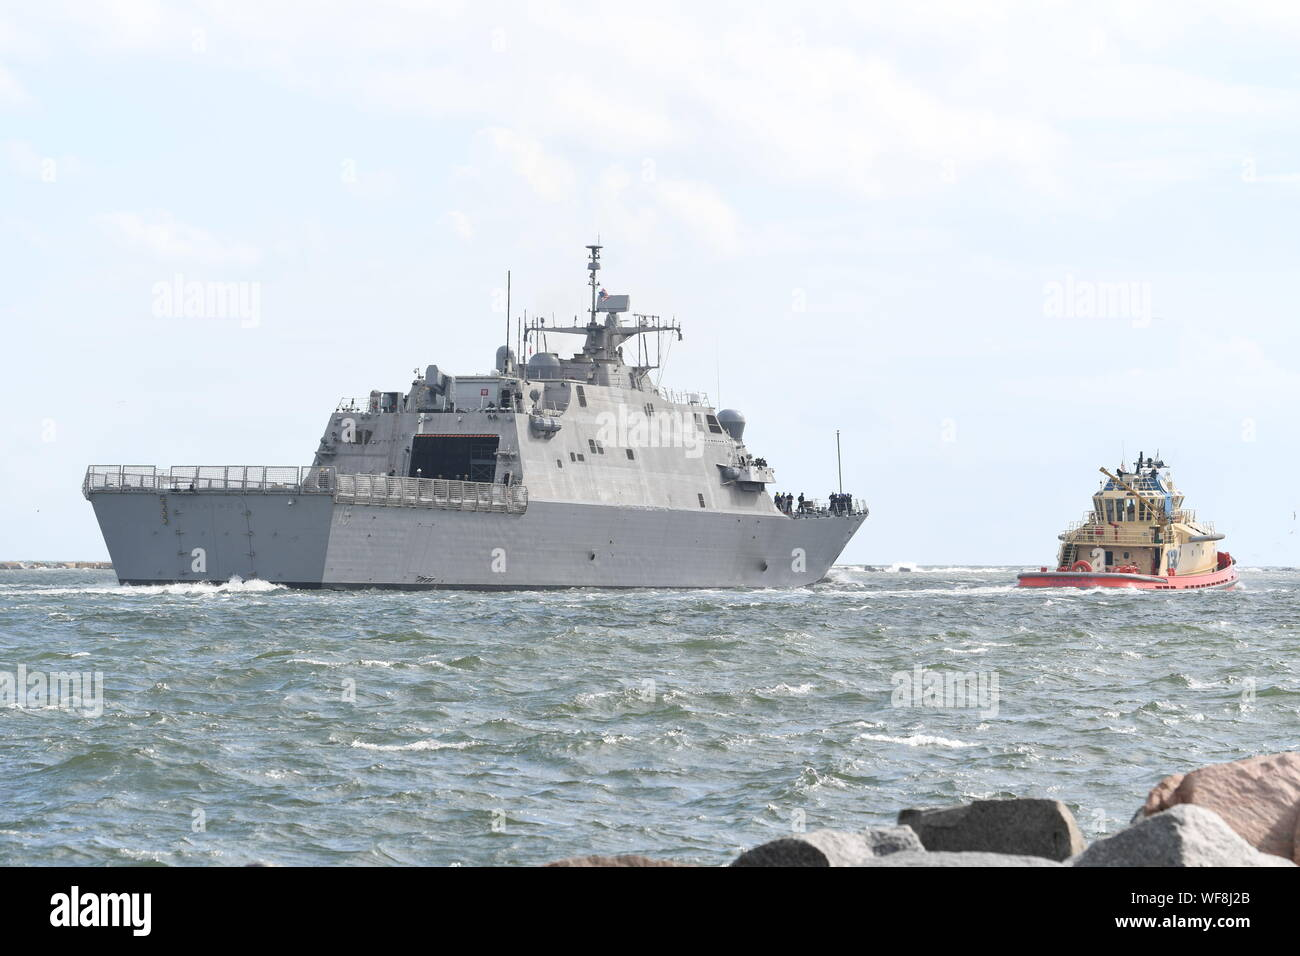 190830-N-DA434-078  JACKSONVILLE, Fla. (Aug. 30, 2019) The Freedom-class variant littoral combat ship USS Billings (LCS 15) departs from Naval Station Mayport as Commander, U.S. 4th Fleet orders all U.S. Navy ships homeported in the area to sortie ahead of Hurricane Dorian, which is forecasted to bring high winds and heavy rain to the East Coast. Ships are being directed to areas in the Atlantic where they are best postured for storm avoidance. (U.S. Navy photo by Mass Communication Specialist 3rd Class Alana Langdon/Released) Stock Photo